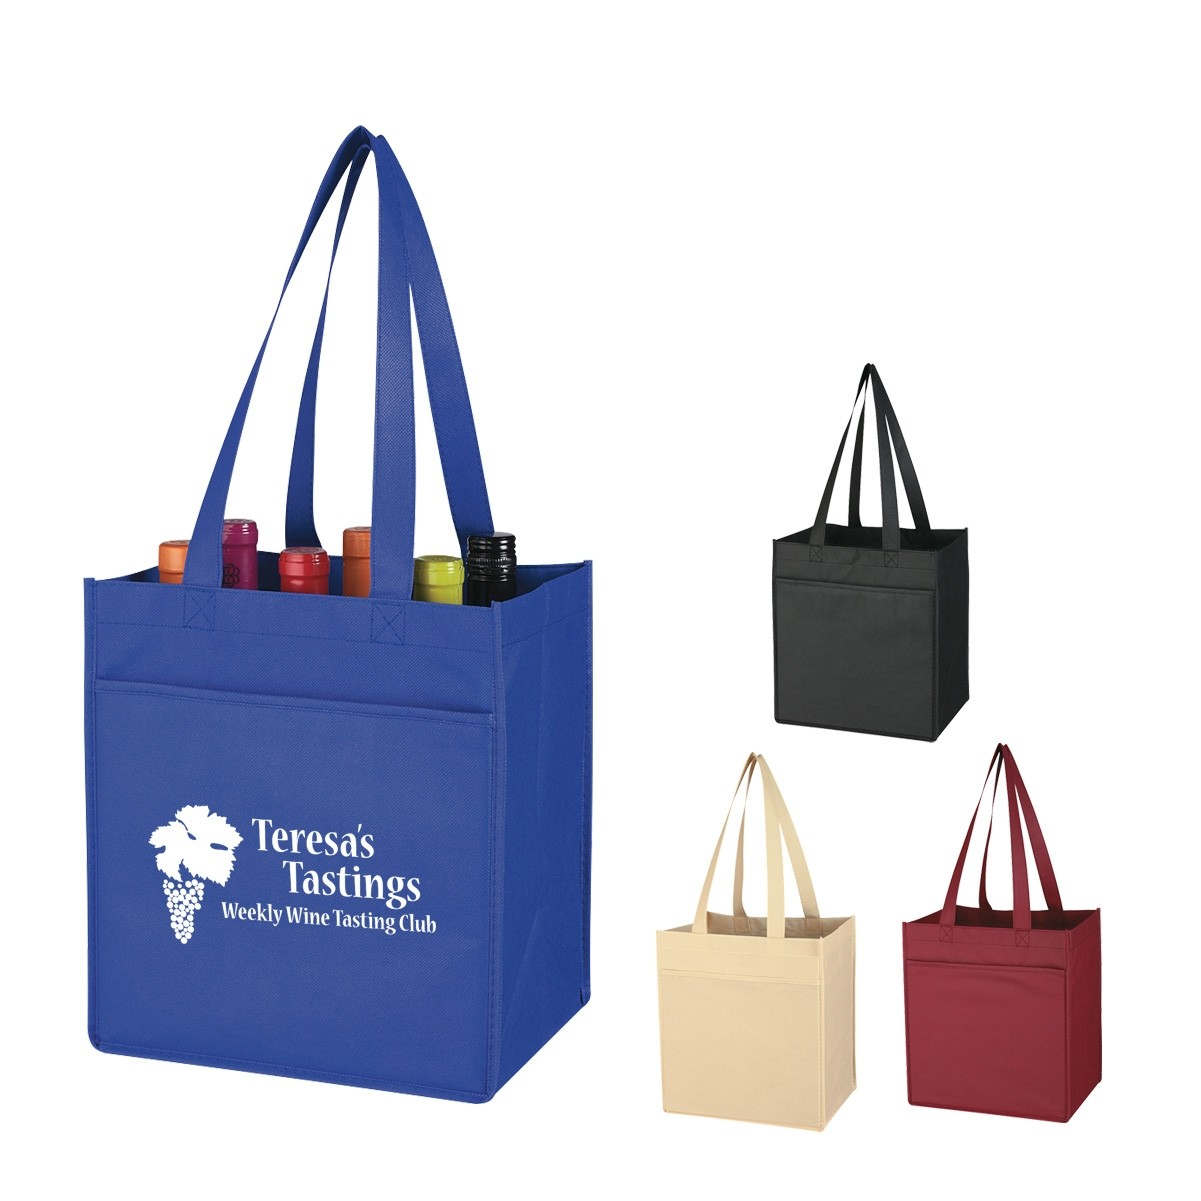 Promotional Non-Woven 6 Bottle Wine Tote Bag,